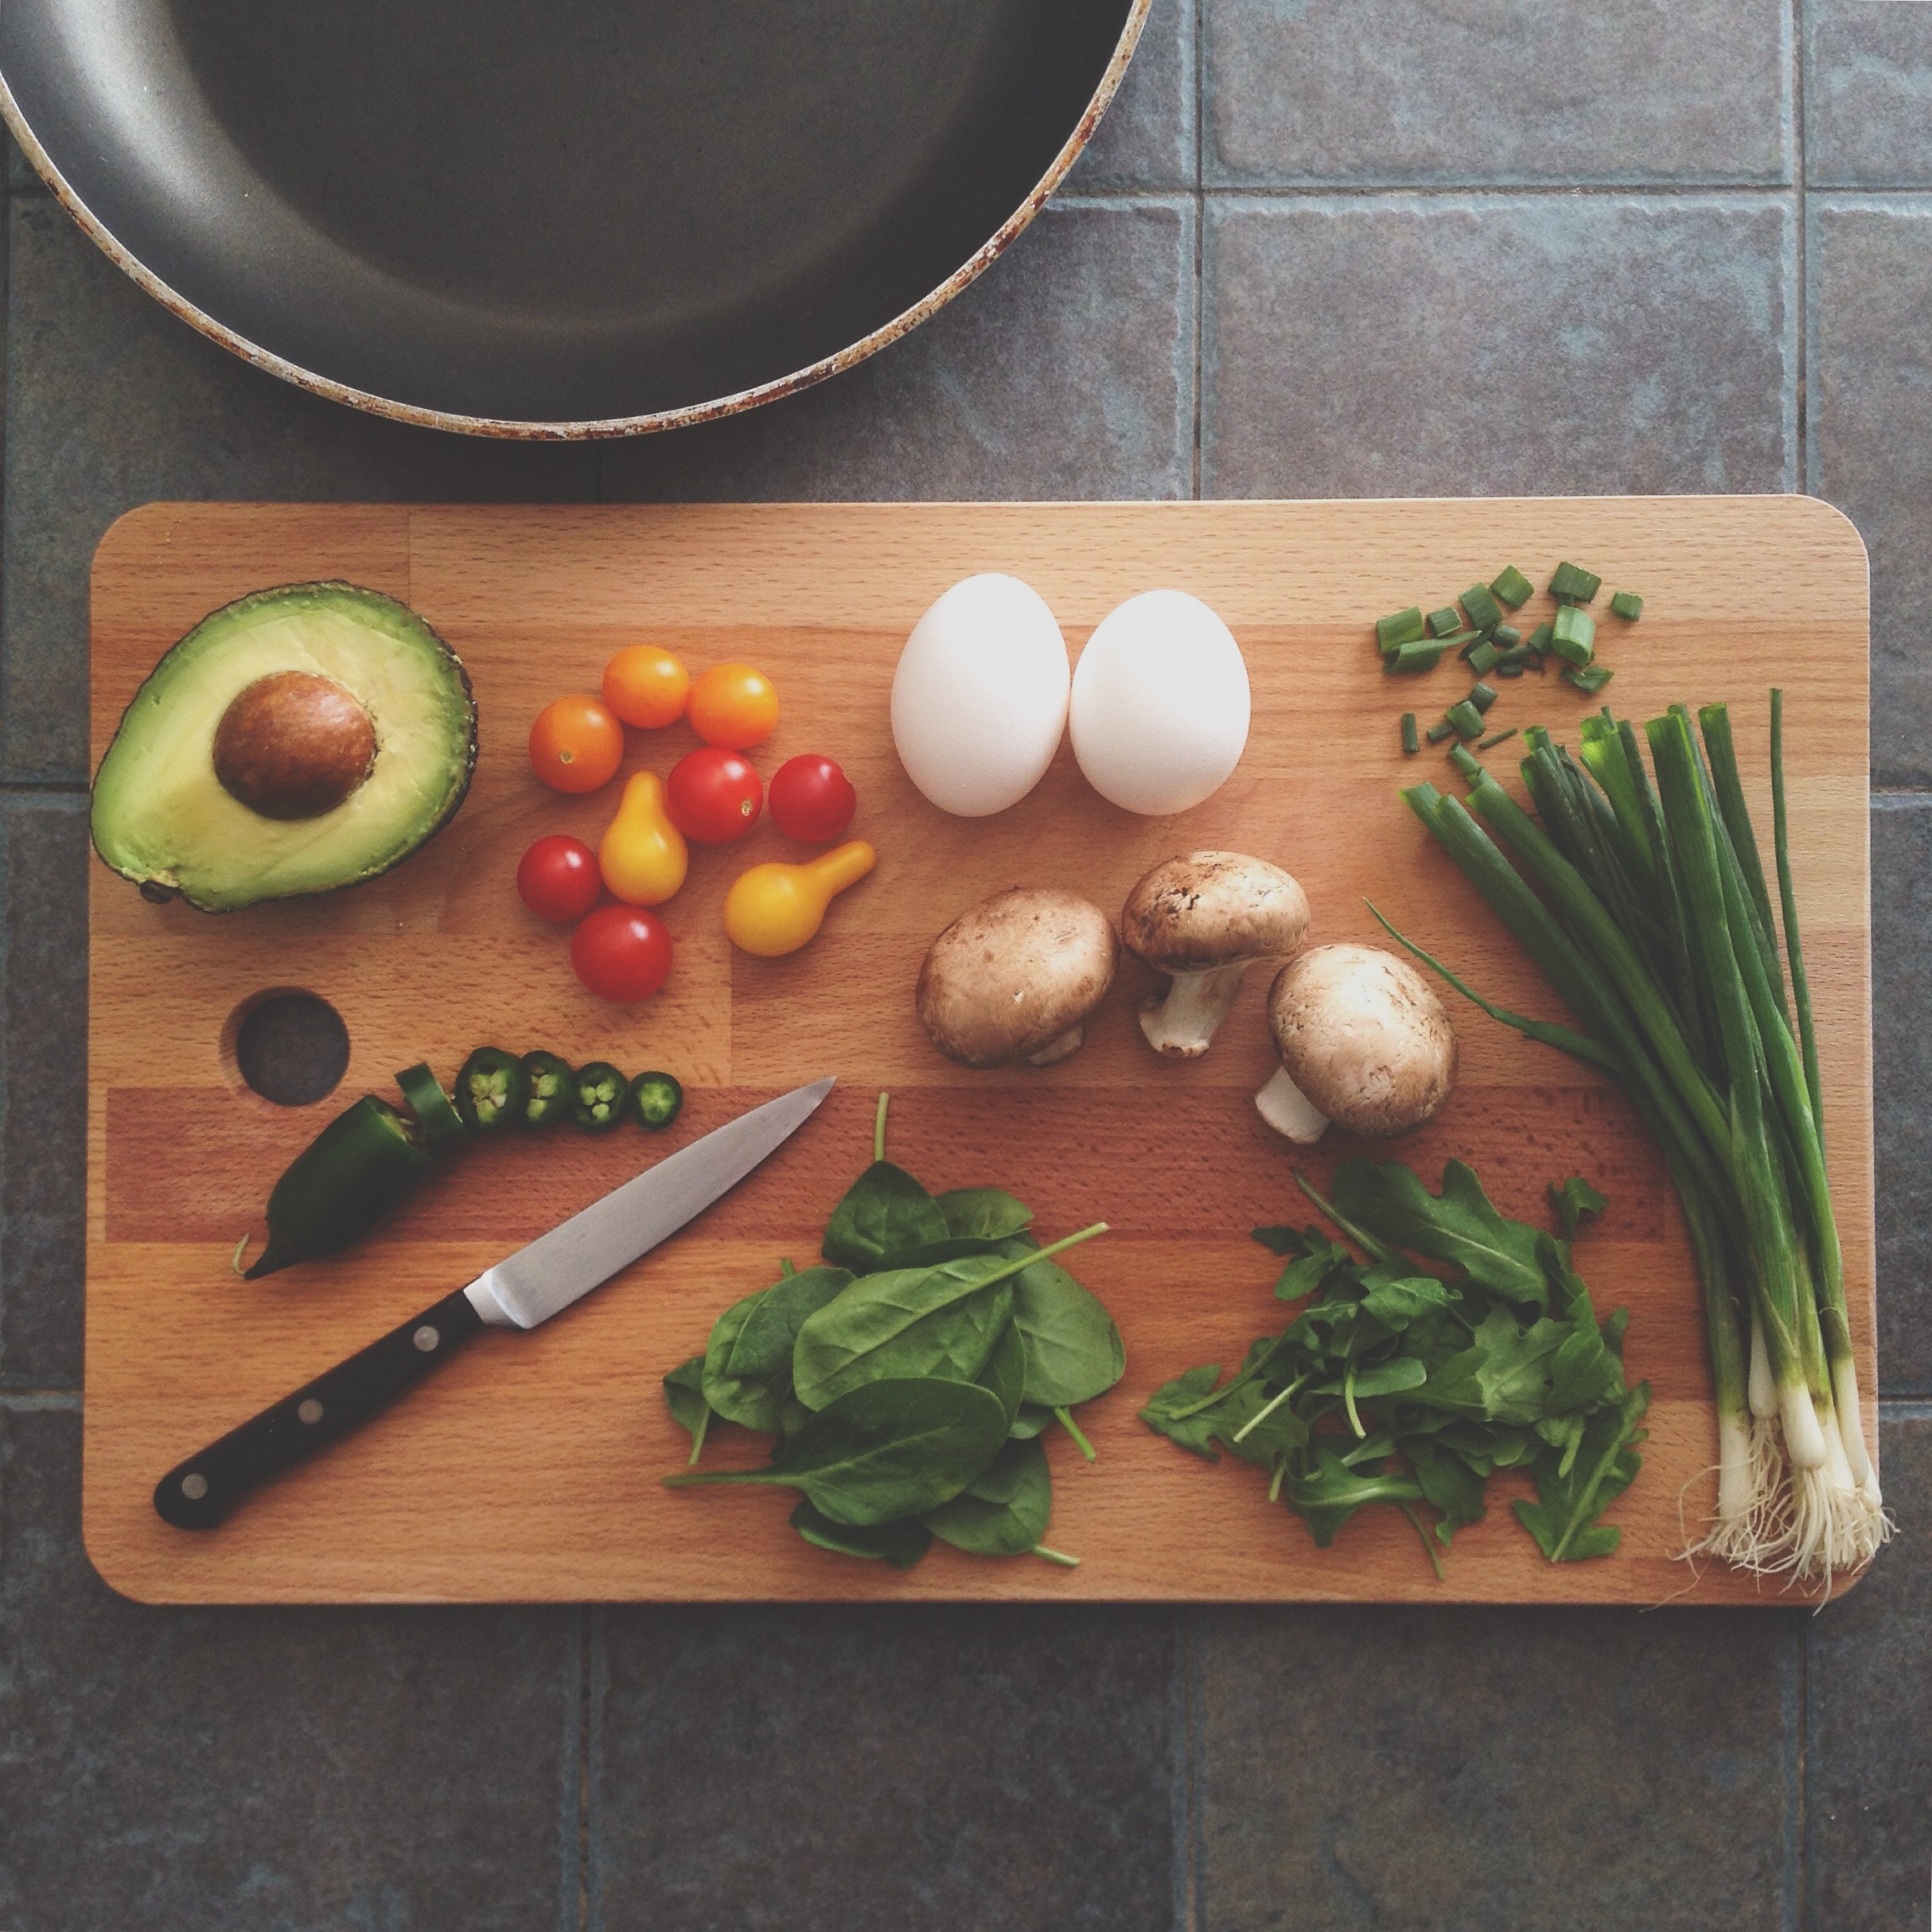 food items on cutting board